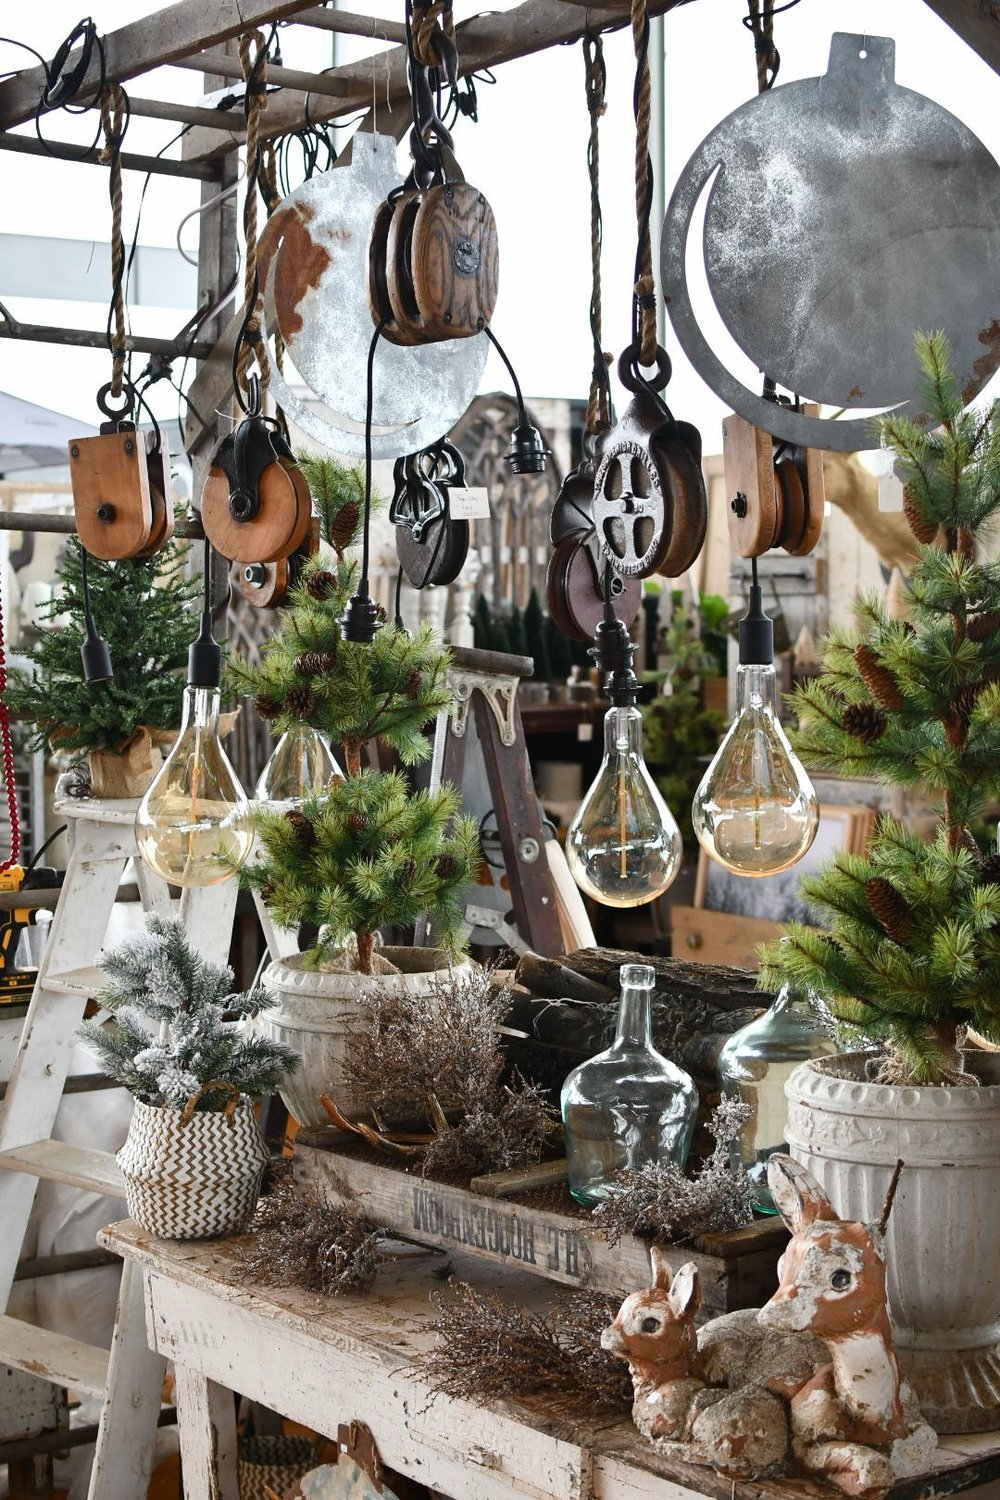 farmhouse vintage decor items Yanitza Ninett Photography